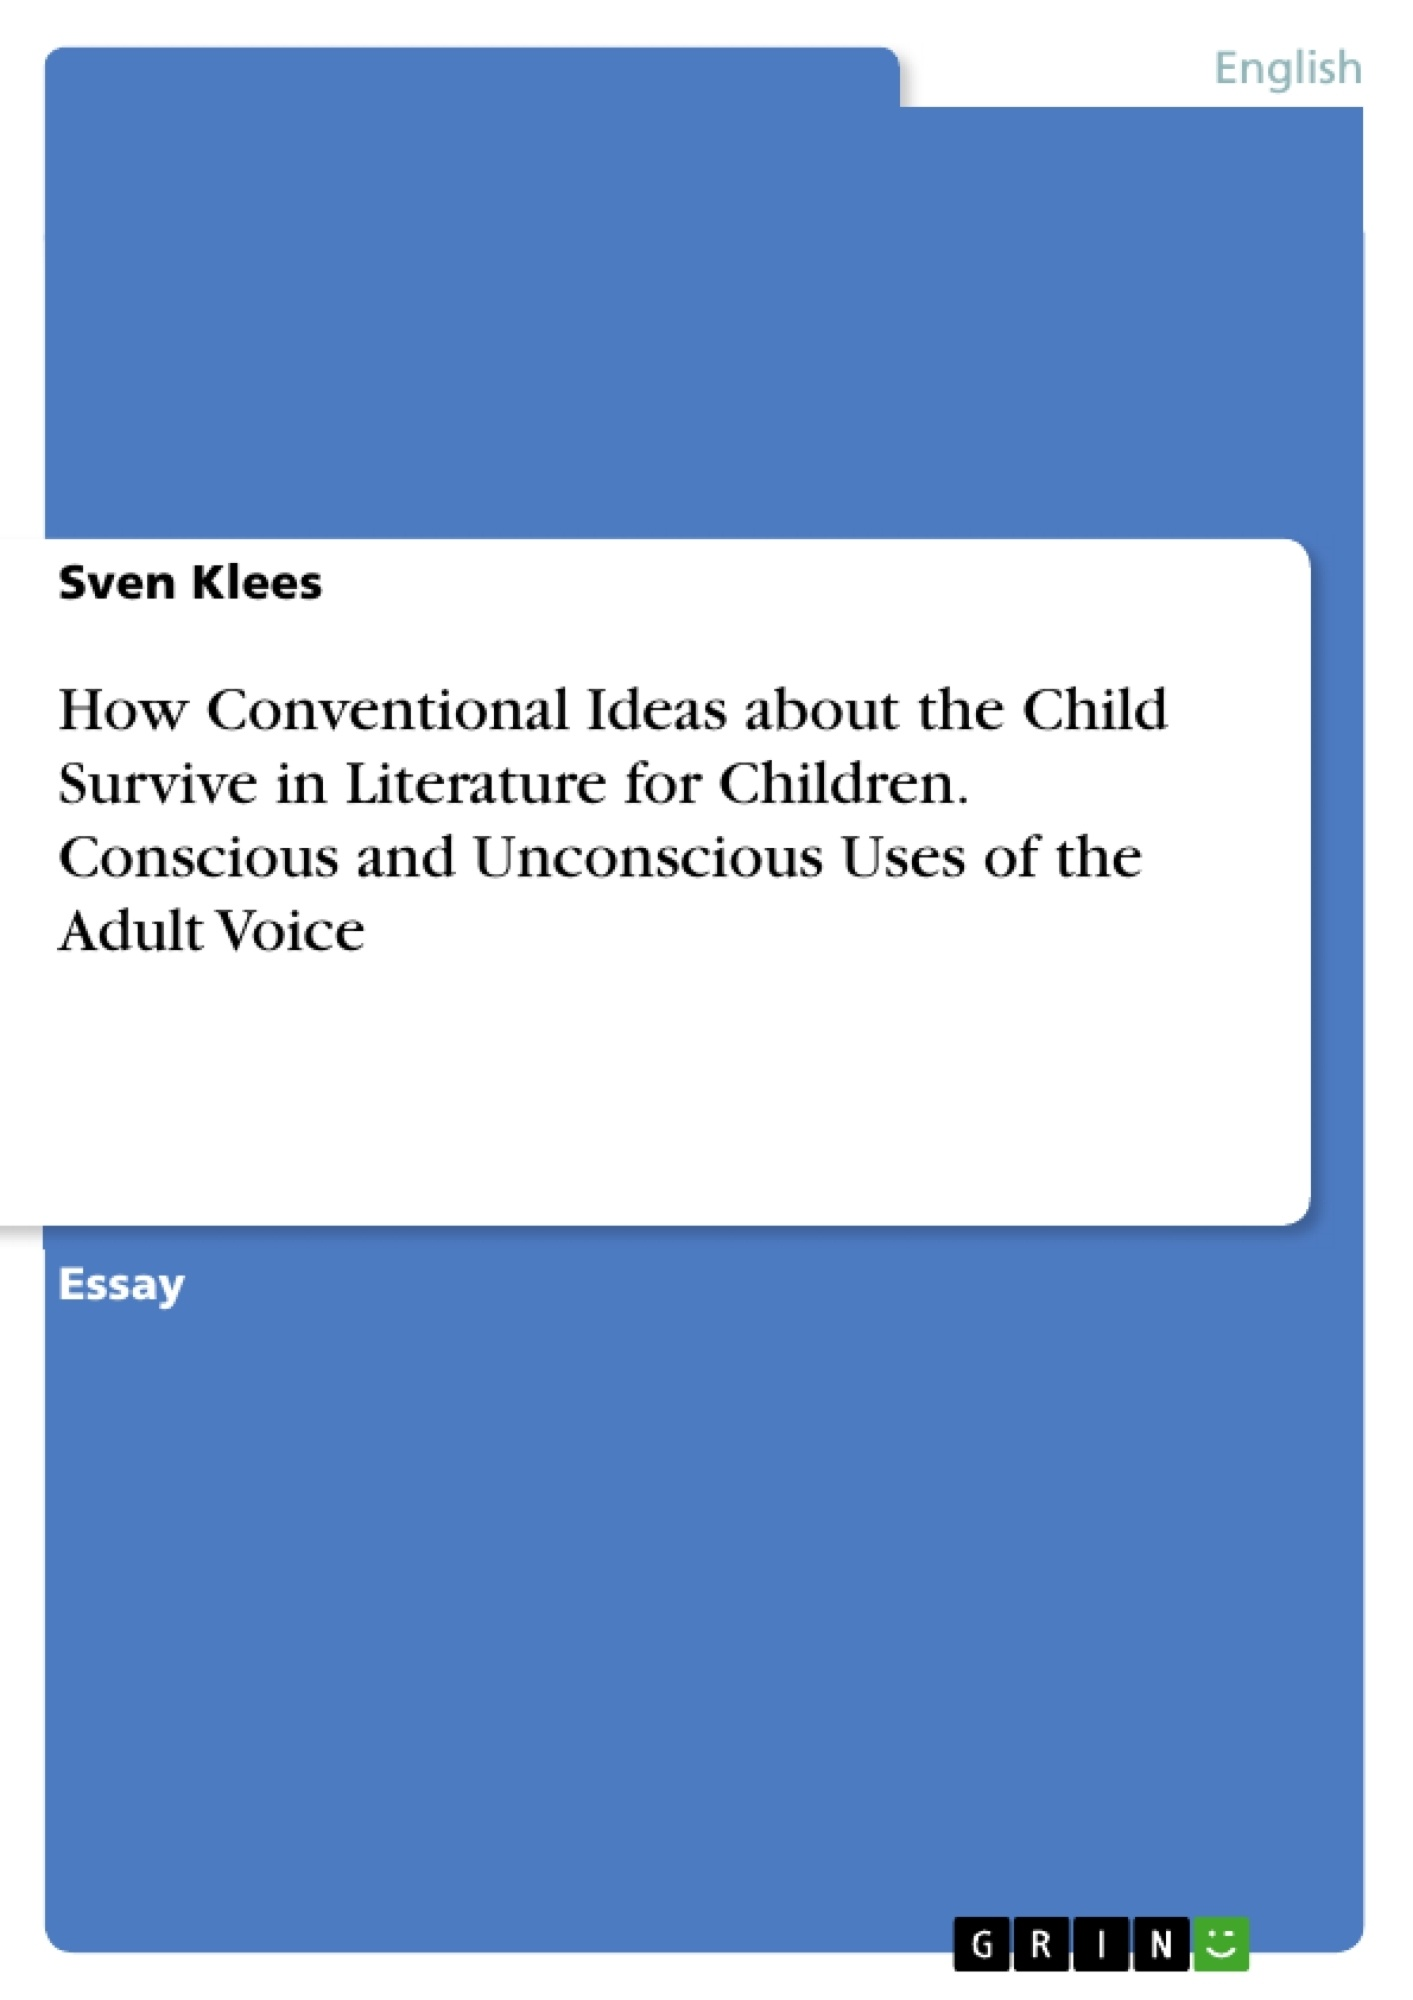 Title: How Conventional Ideas about the Child Survive in Literature for Children. Conscious and Unconscious Uses of the Adult Voice